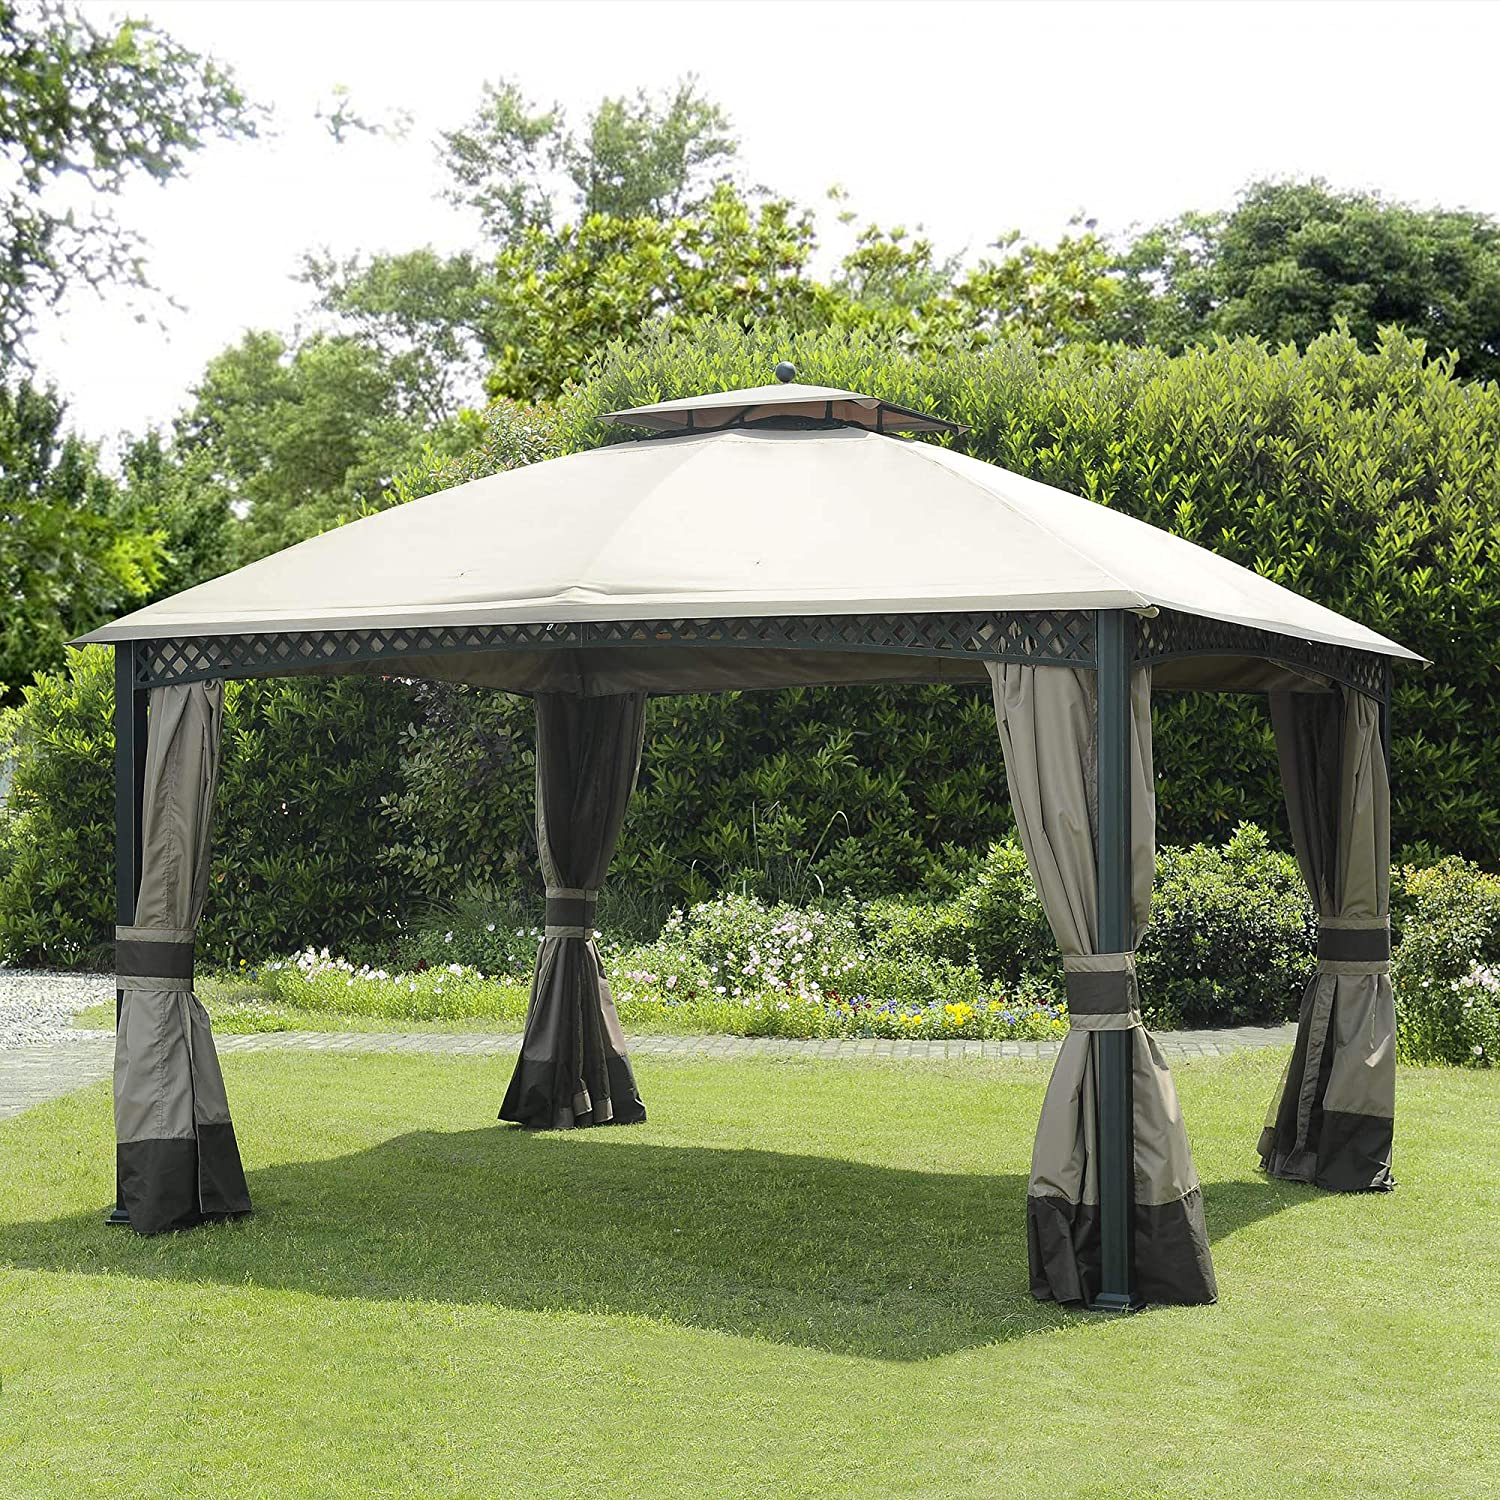 Sunjoy Replacement Canopy Set for 10×12 ft Windsor Gazebo- Canopy only